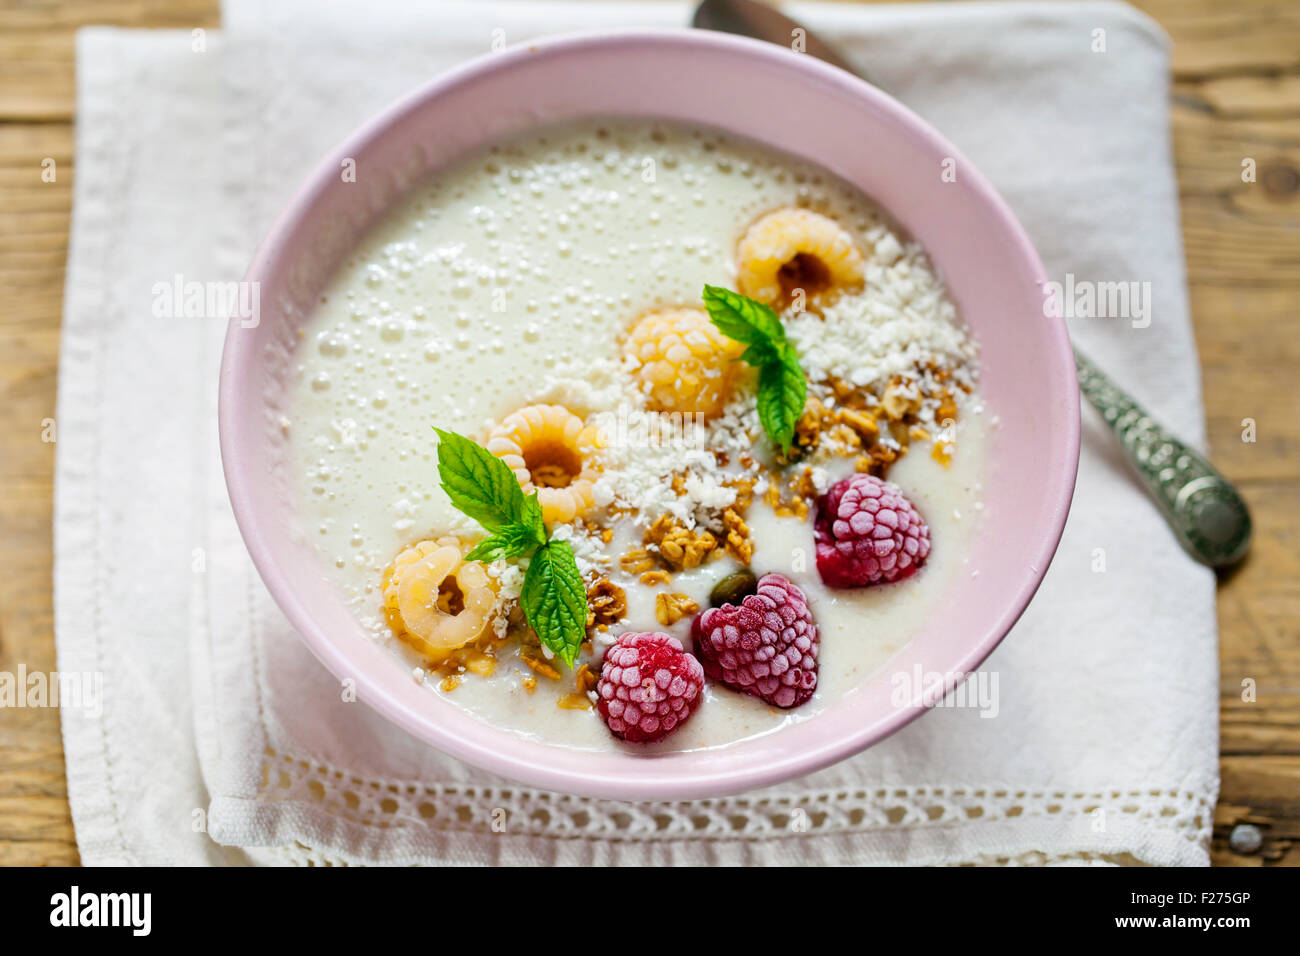 Breakfast smoothie with raspberries and granola - Stock Image